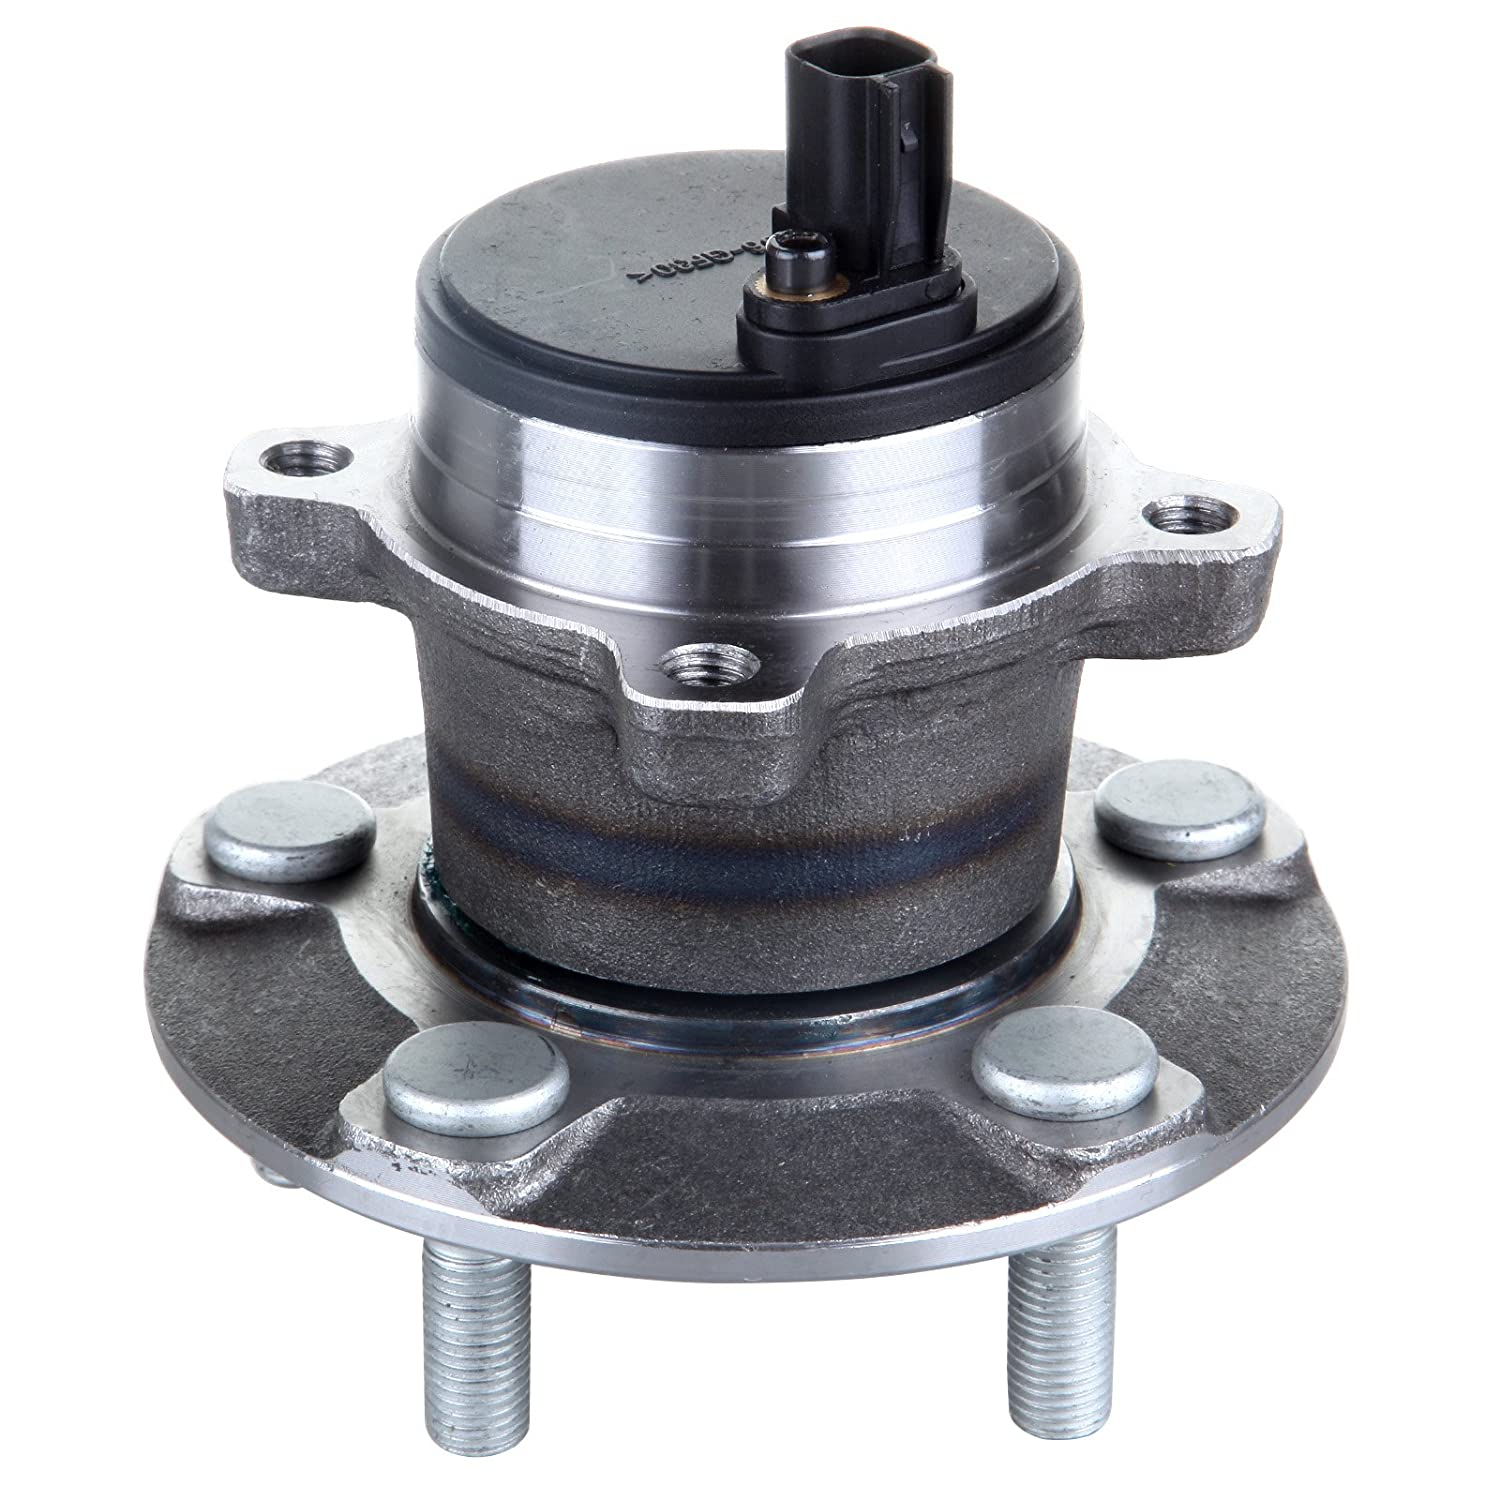 ECCPP Replacement for Wheel Bearing and Hub Assembly for Volvo C30 2006-2012//S40//V50 2005-2011 Wheel Hubs 5 Lugs W//ABS 512411x2